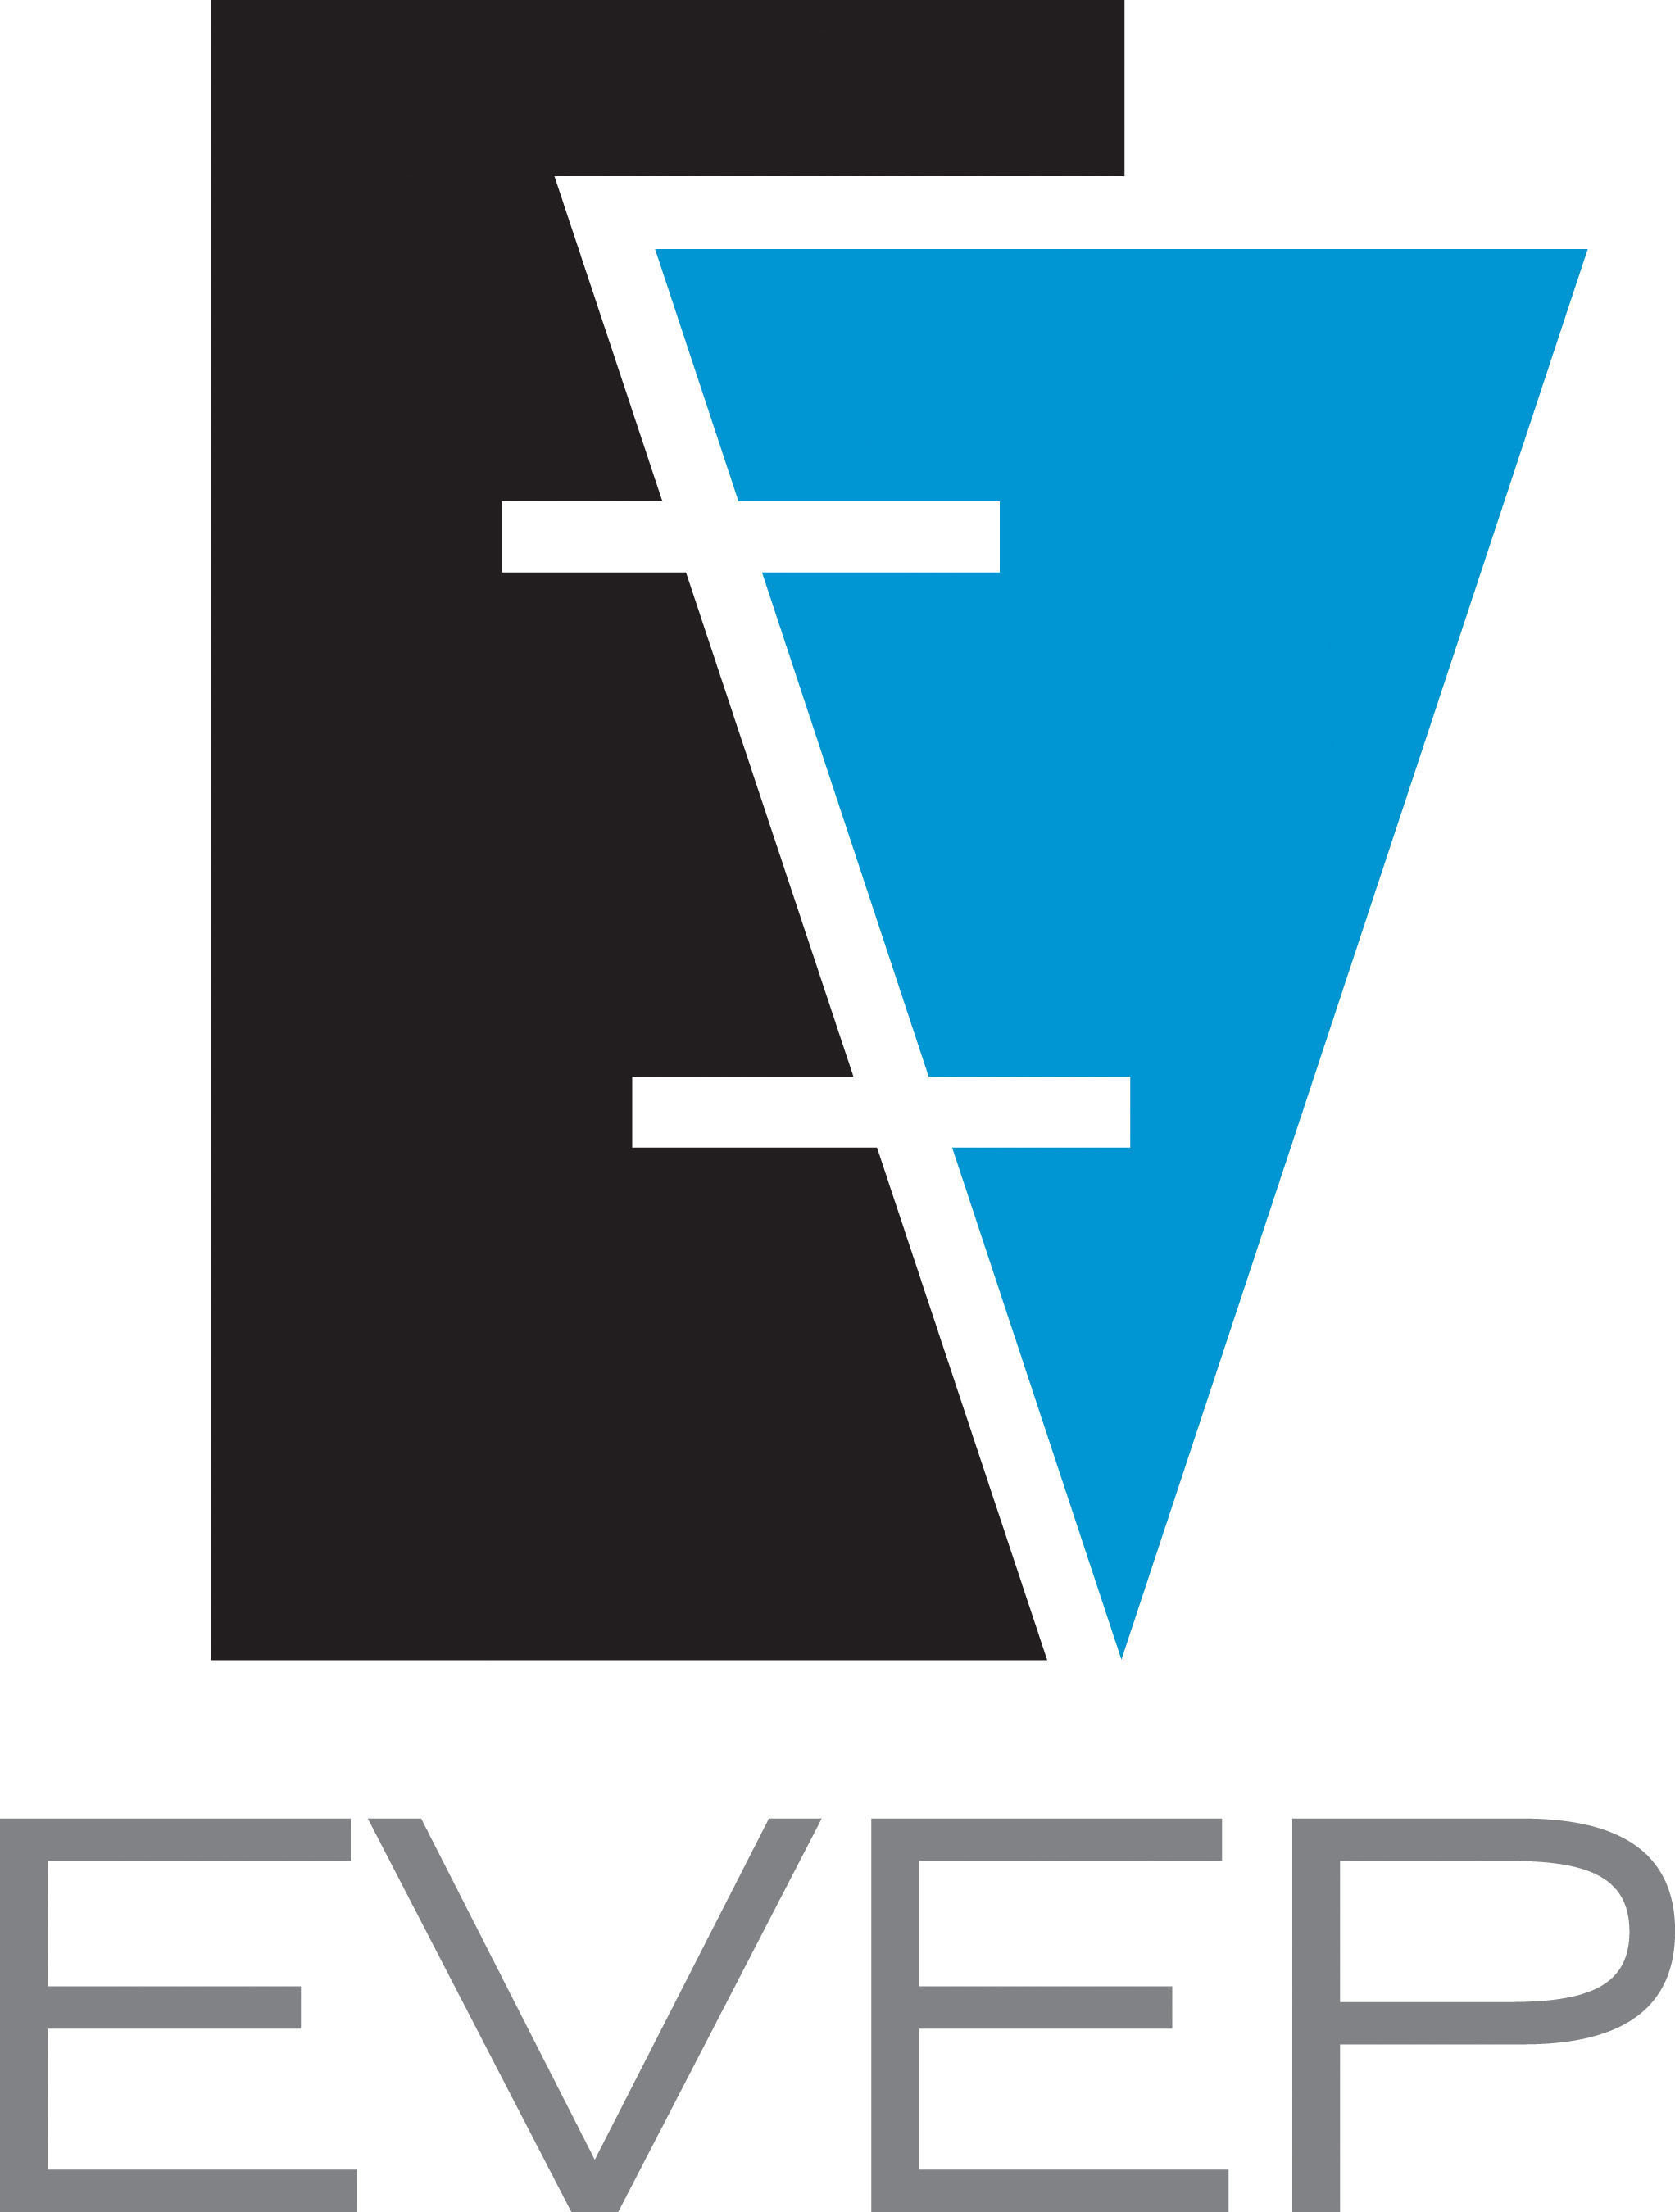 EV Energy Partners to Present at Raymond James 36th Annual Institutional Investor Conference on March 3